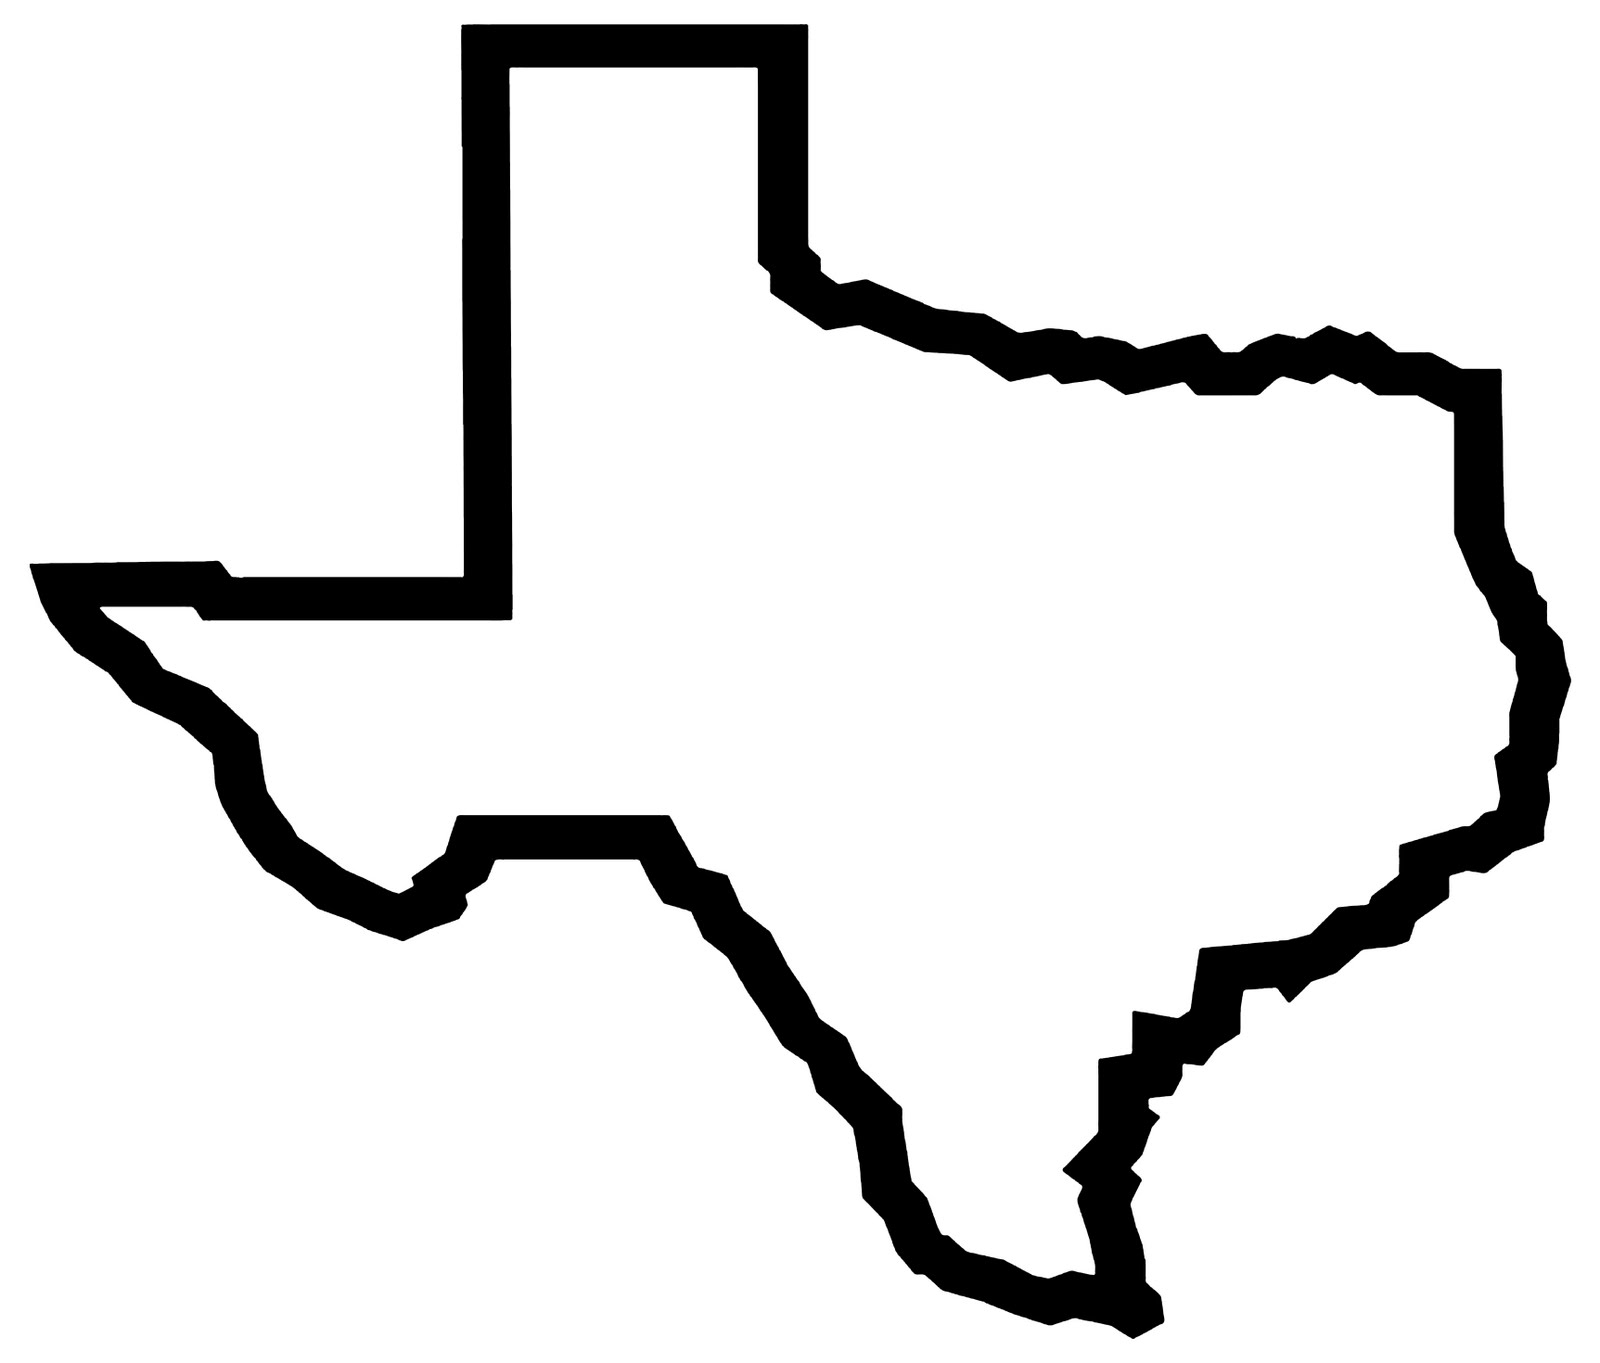 Texas clipart #15, Download drawings